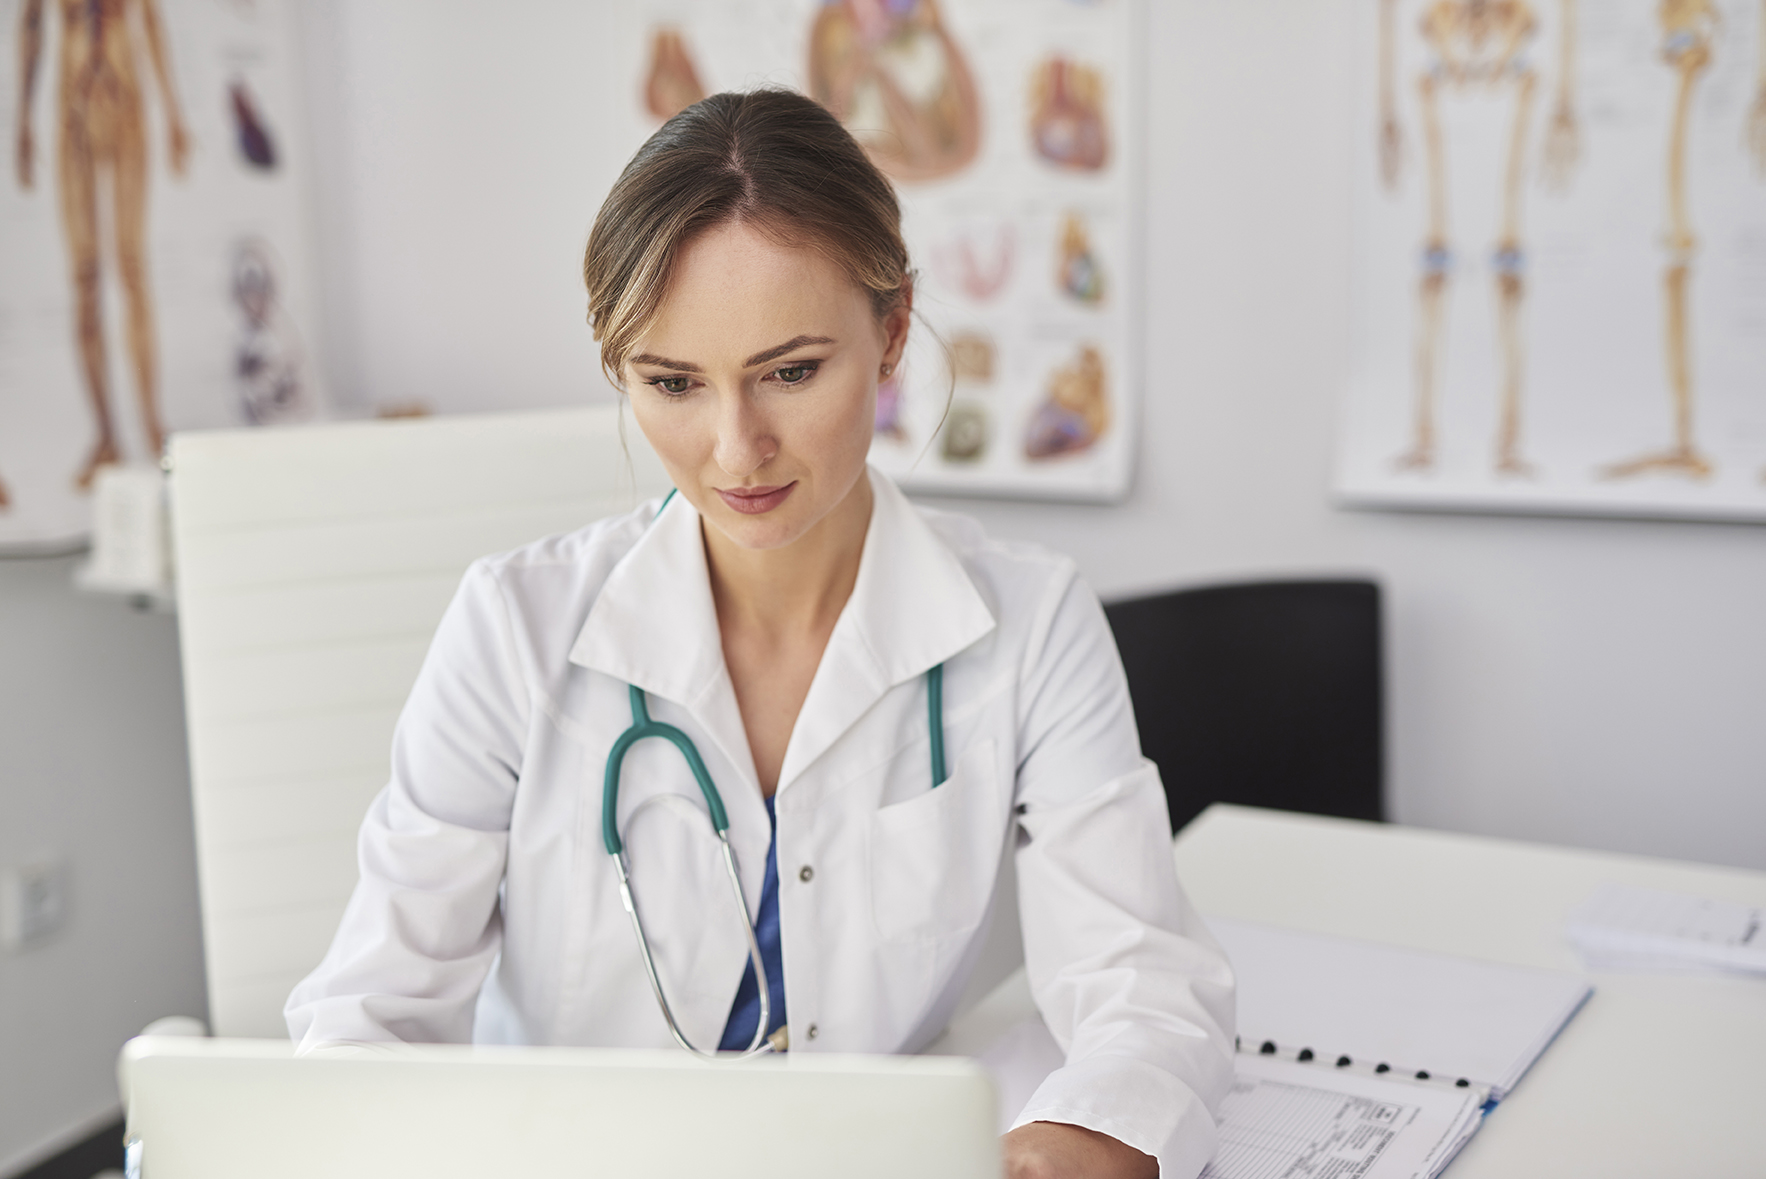 Female doctor working with technology in doctor's office